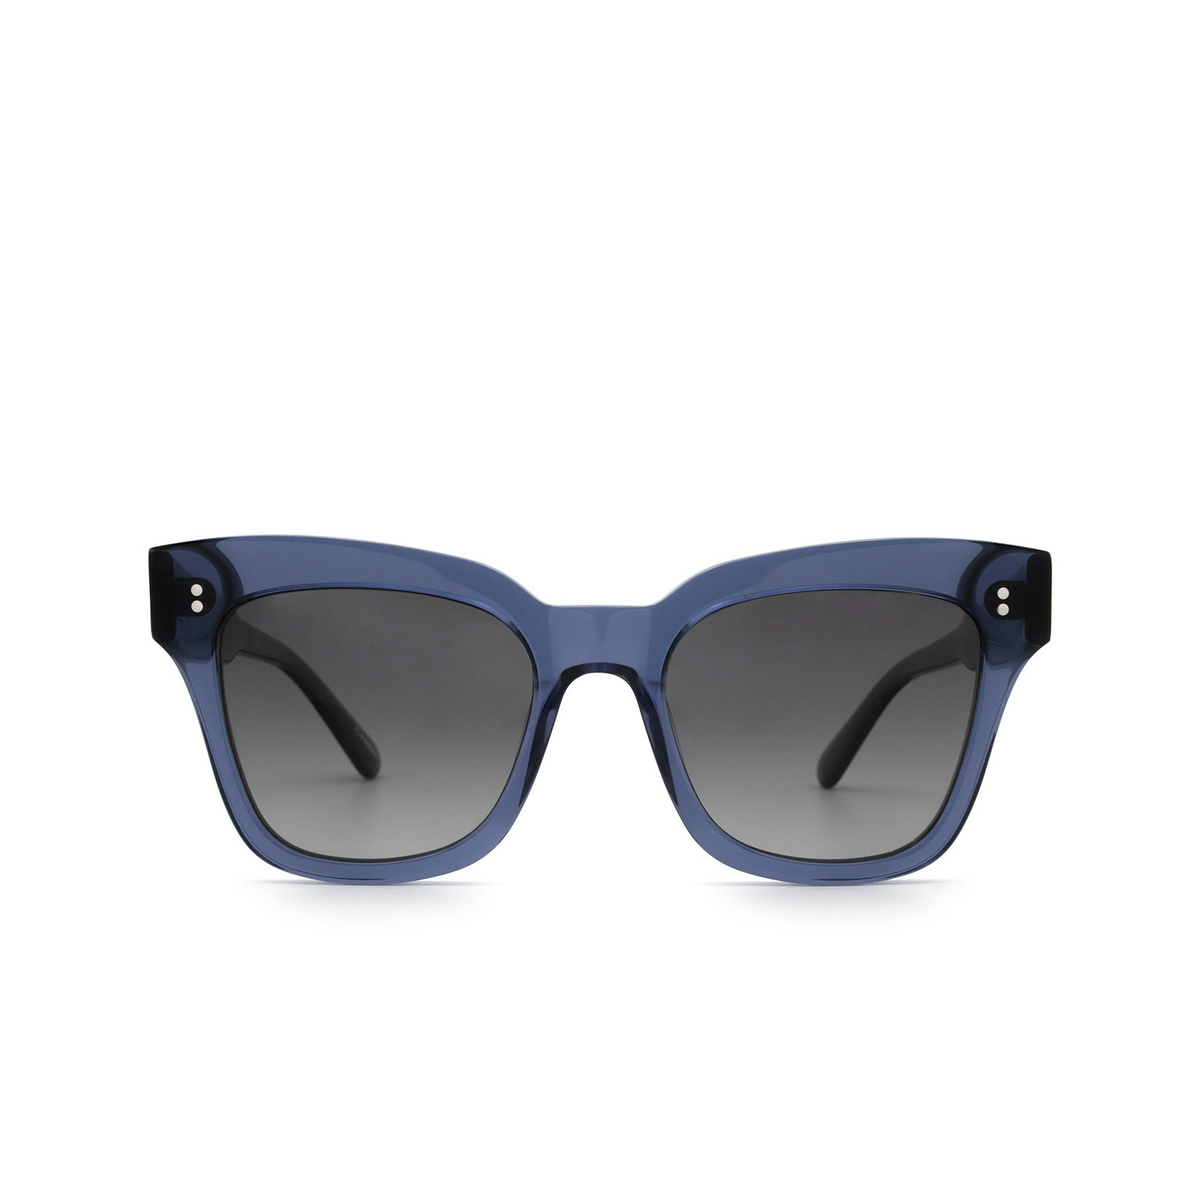 Chimi® Butterfly Sunglasses: 07 color Blue.